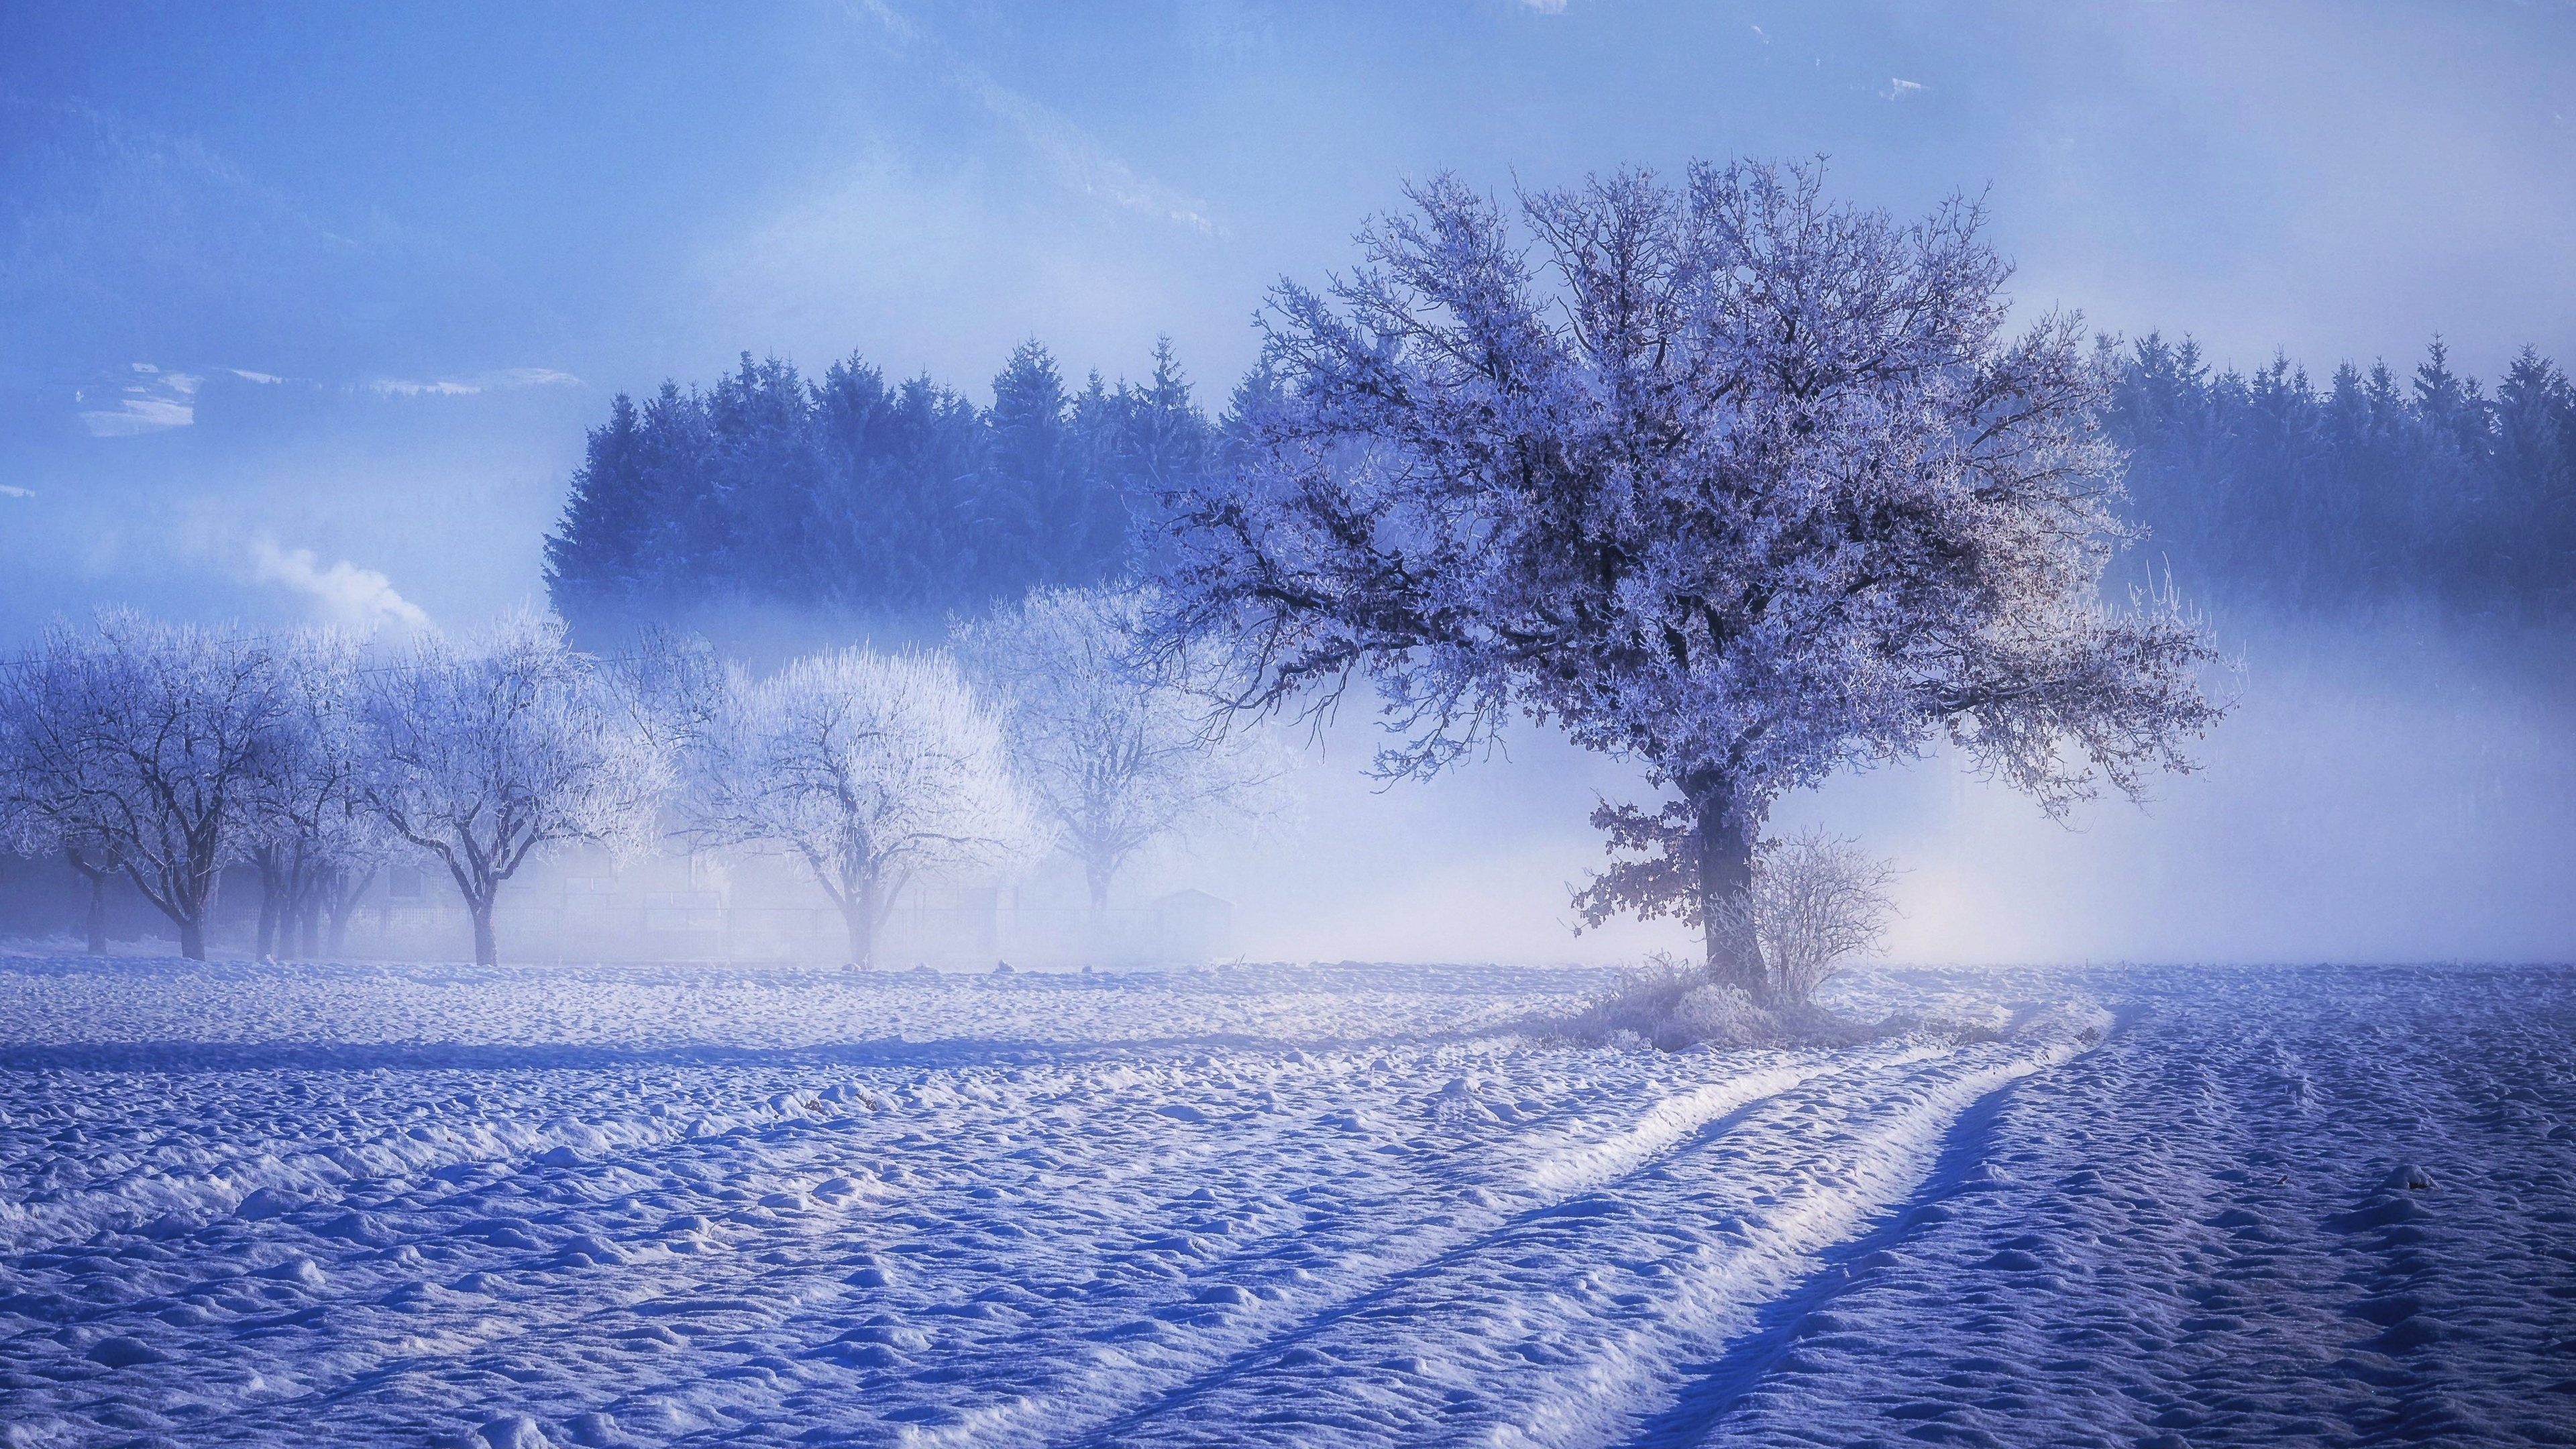 Wallpaper 4k Trees Covered With Snow Fog Landscape Winter 4k